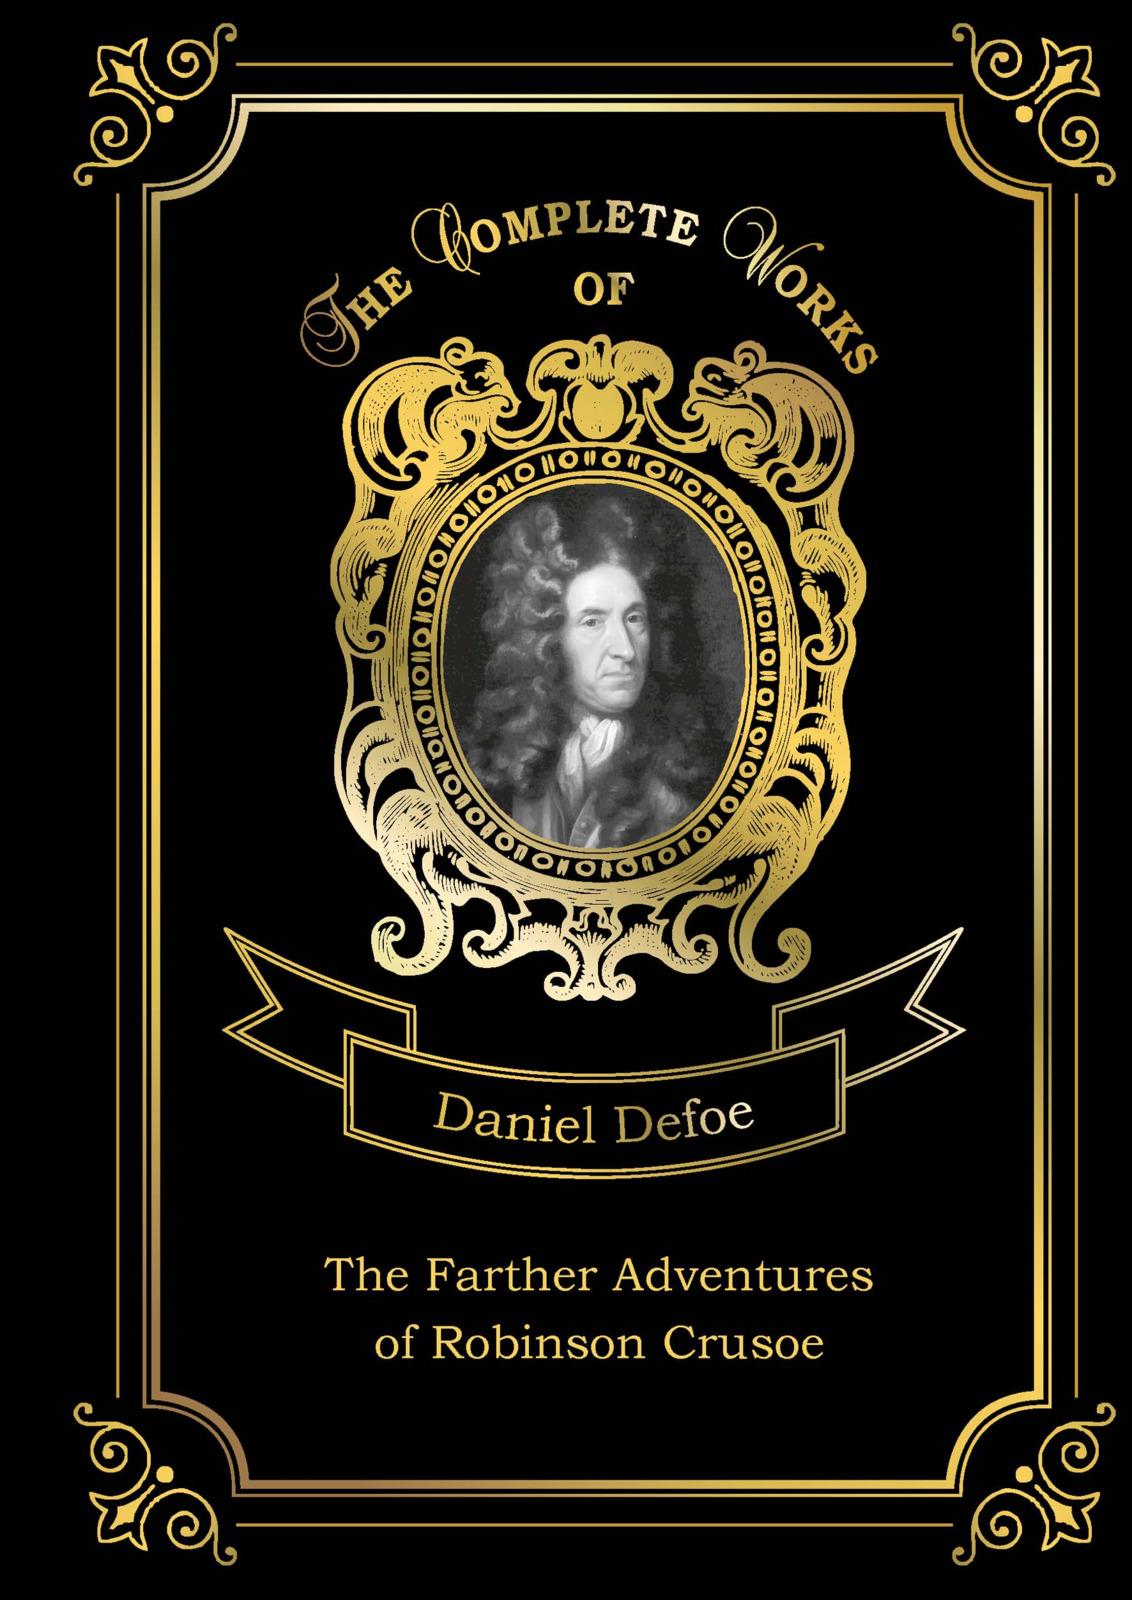 Daniel Defoe The Farther Adventures of Robinson Crusoe 70m hdmi 2 0 left angled 90 degree male to female active repeater extender booster coupler adapter 1080p hdtv